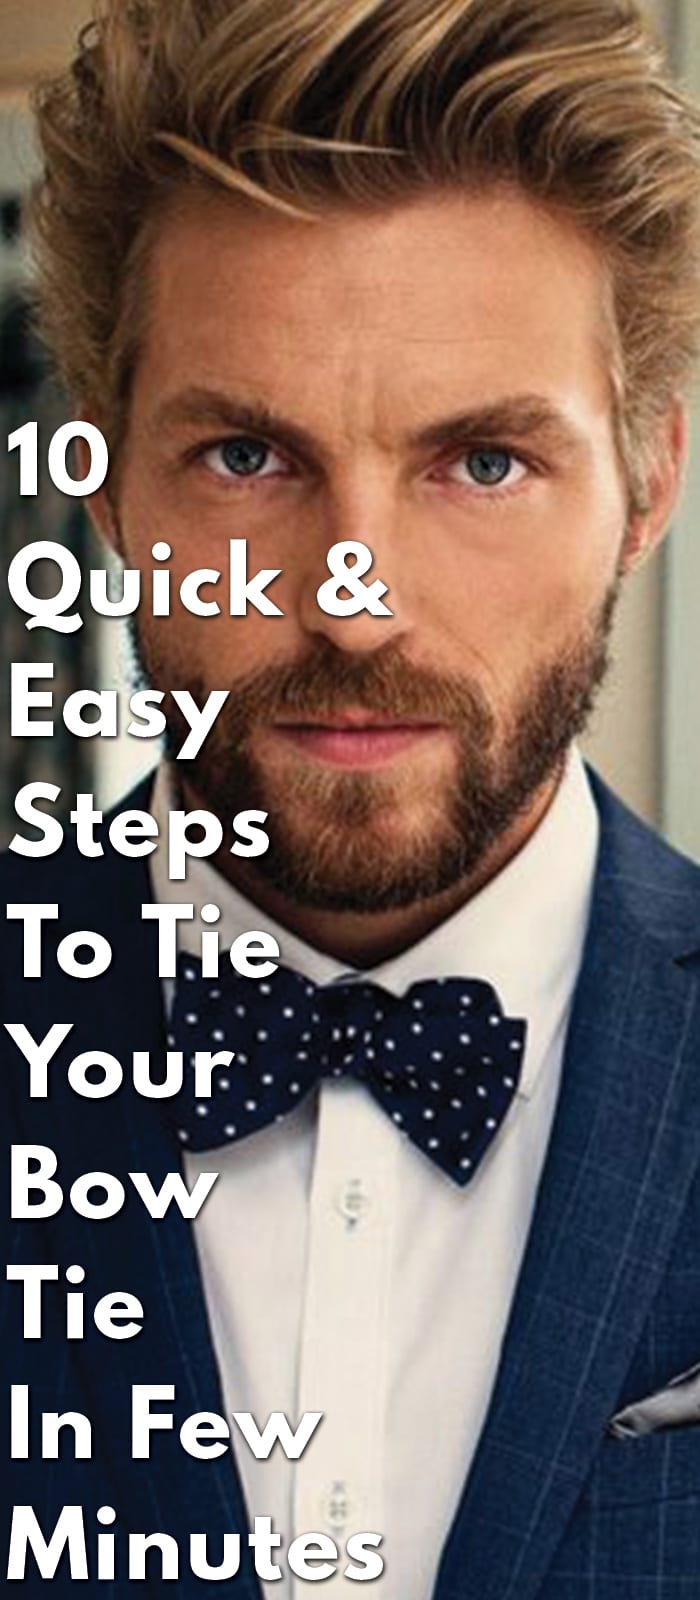 10-Quick-&-Easy-Steps-To-Tie-Your-Bow-Tie-In-Few-Minutes